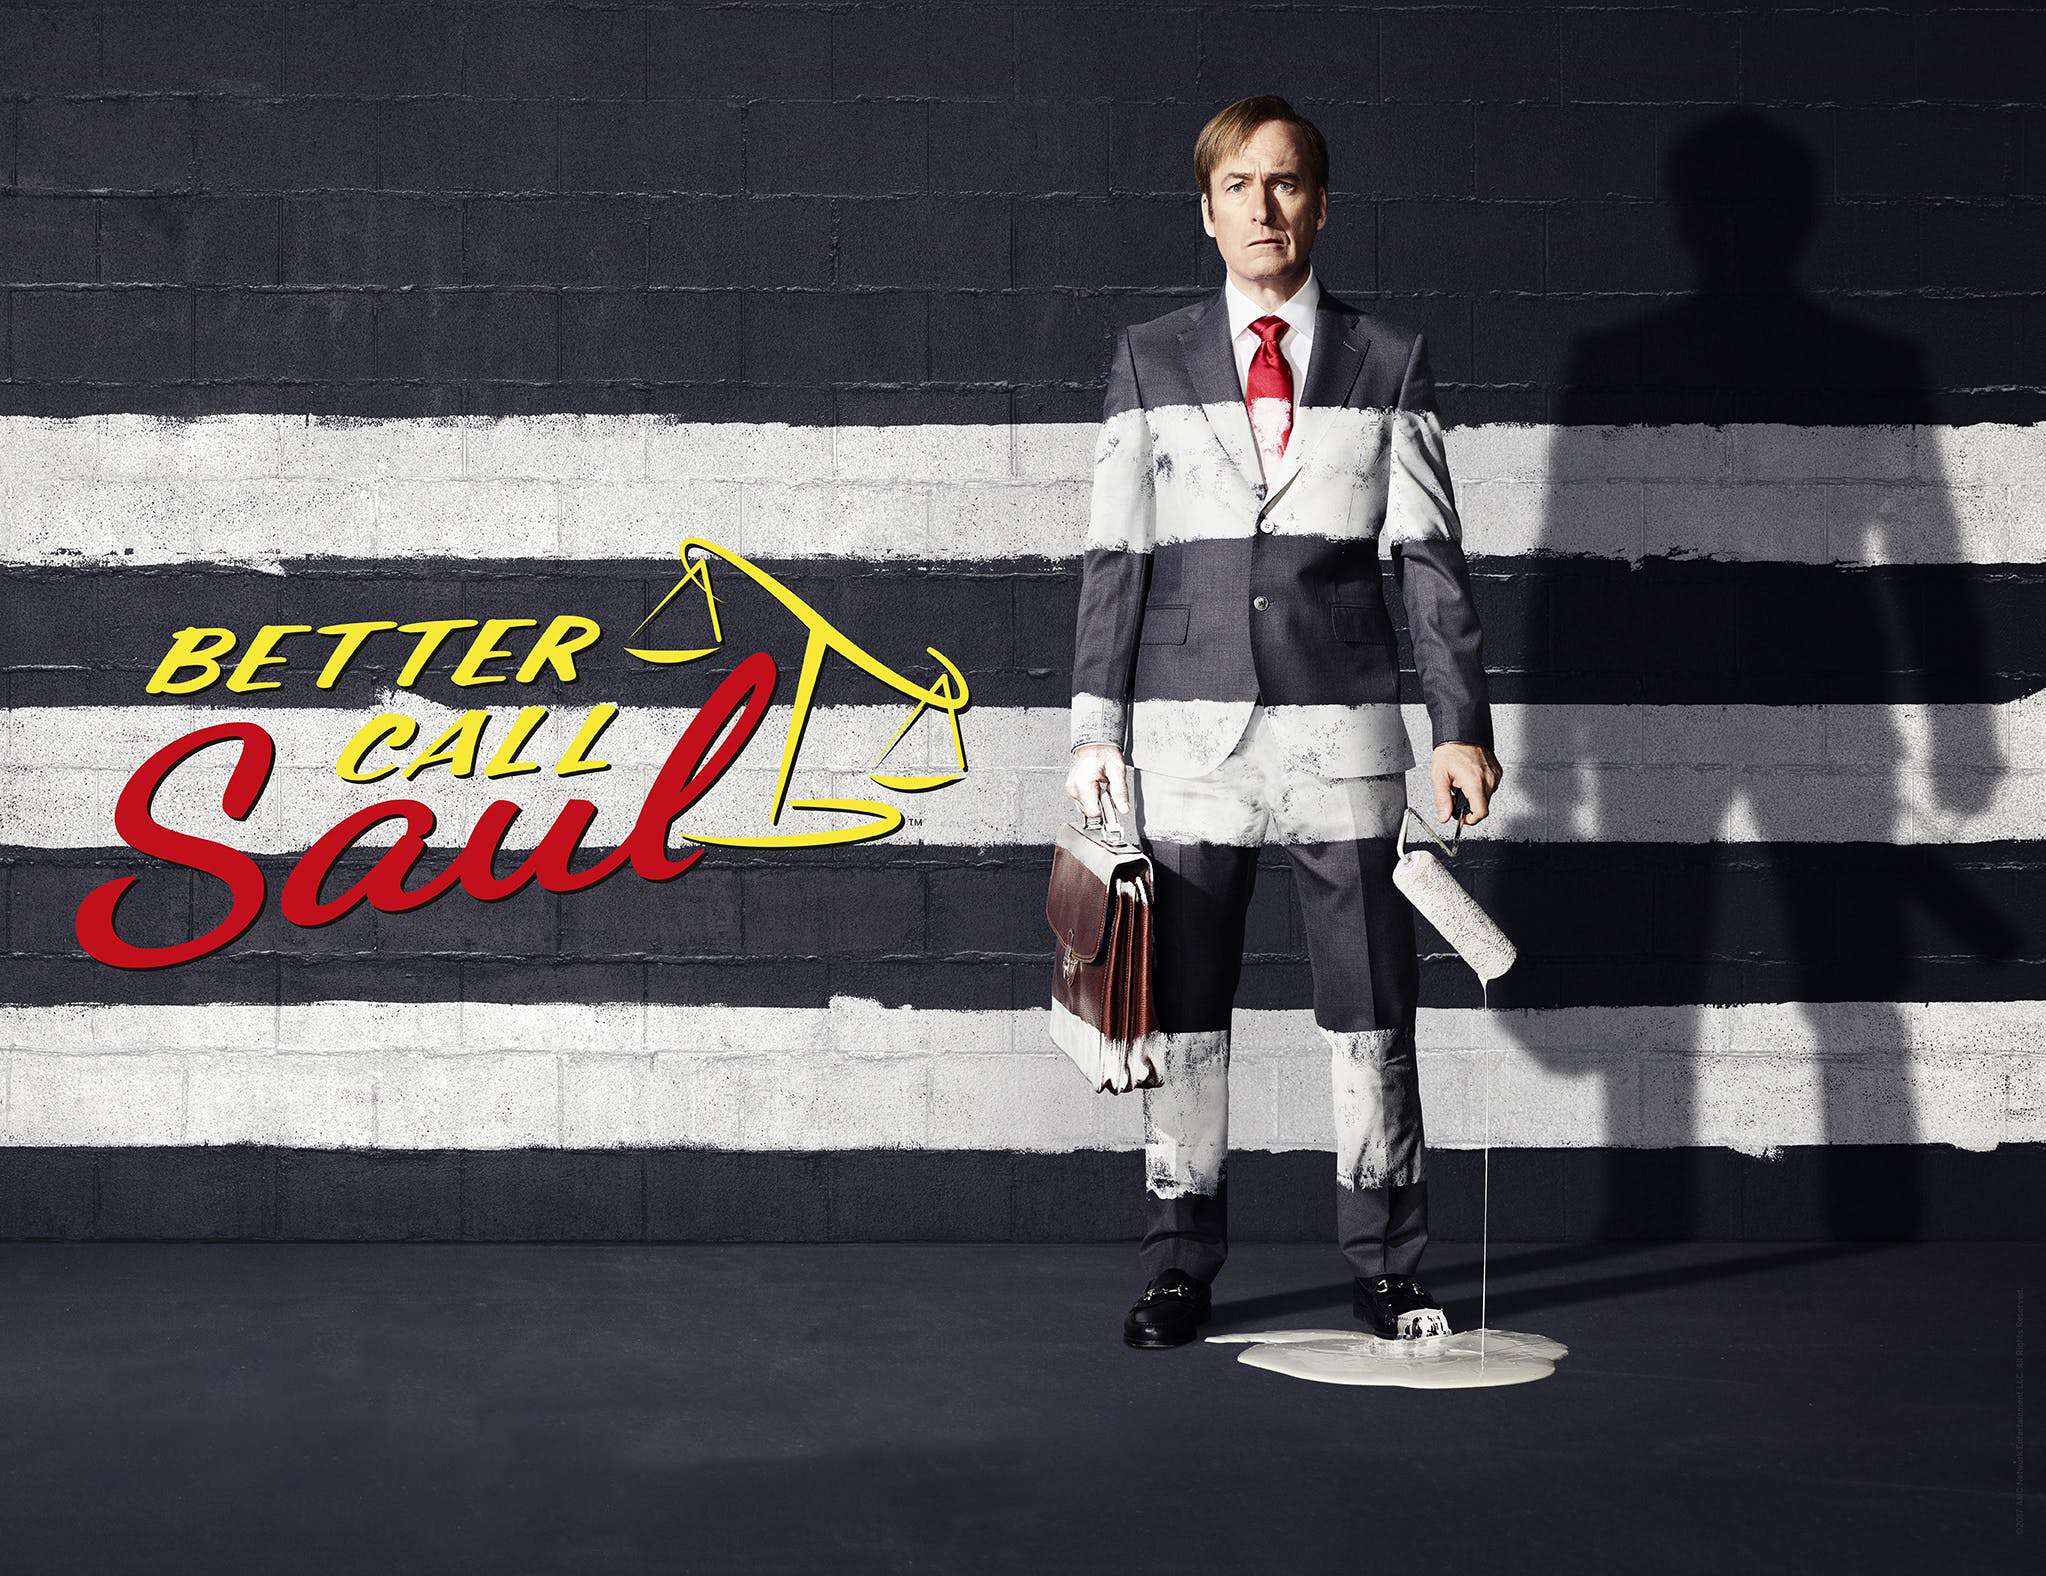 Better Call Saul Season 3 Hd Hd Tv Shows 4k Wallpapers